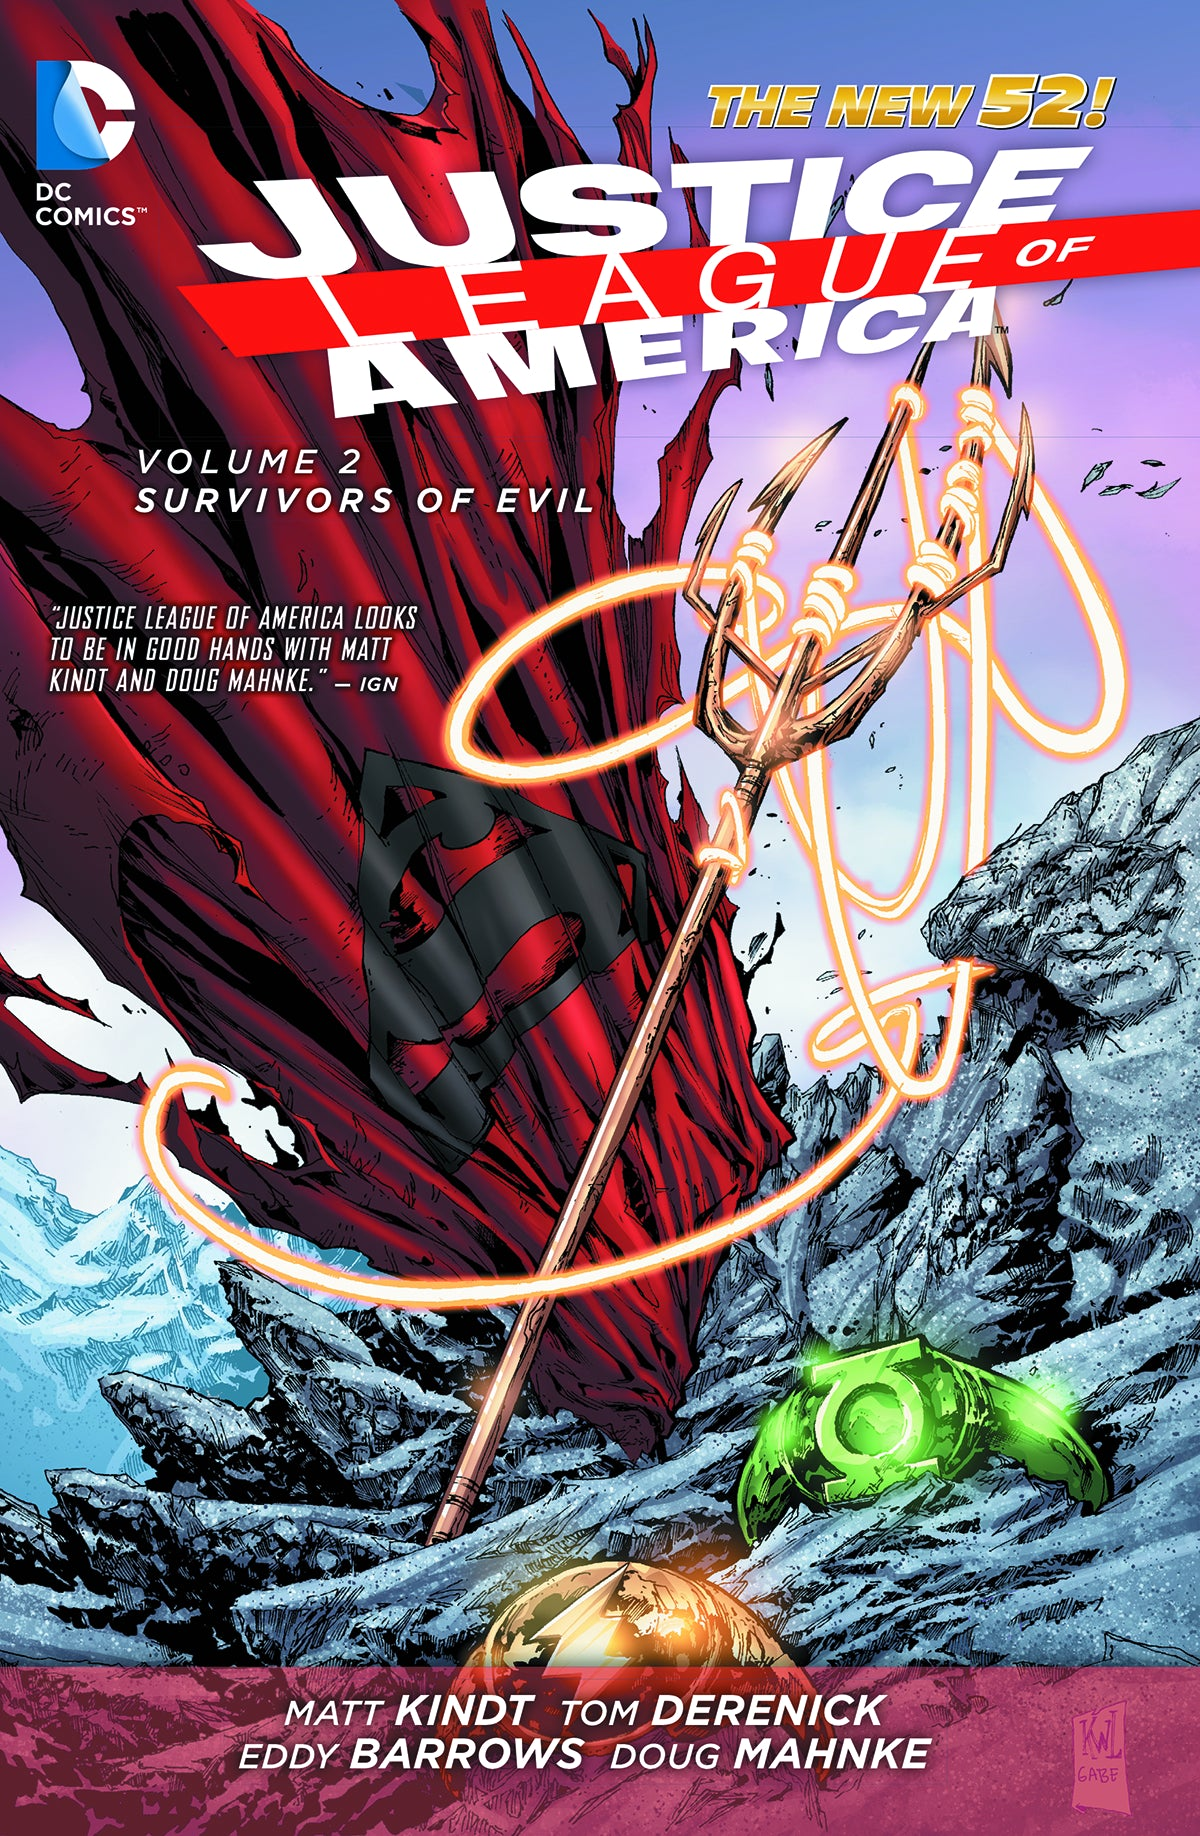 JUSTICE LEAGUE OF AMERICA TP VOL 02 SURVIVORS OF EVIL (N52) | Game Master's Emporium (The New GME)